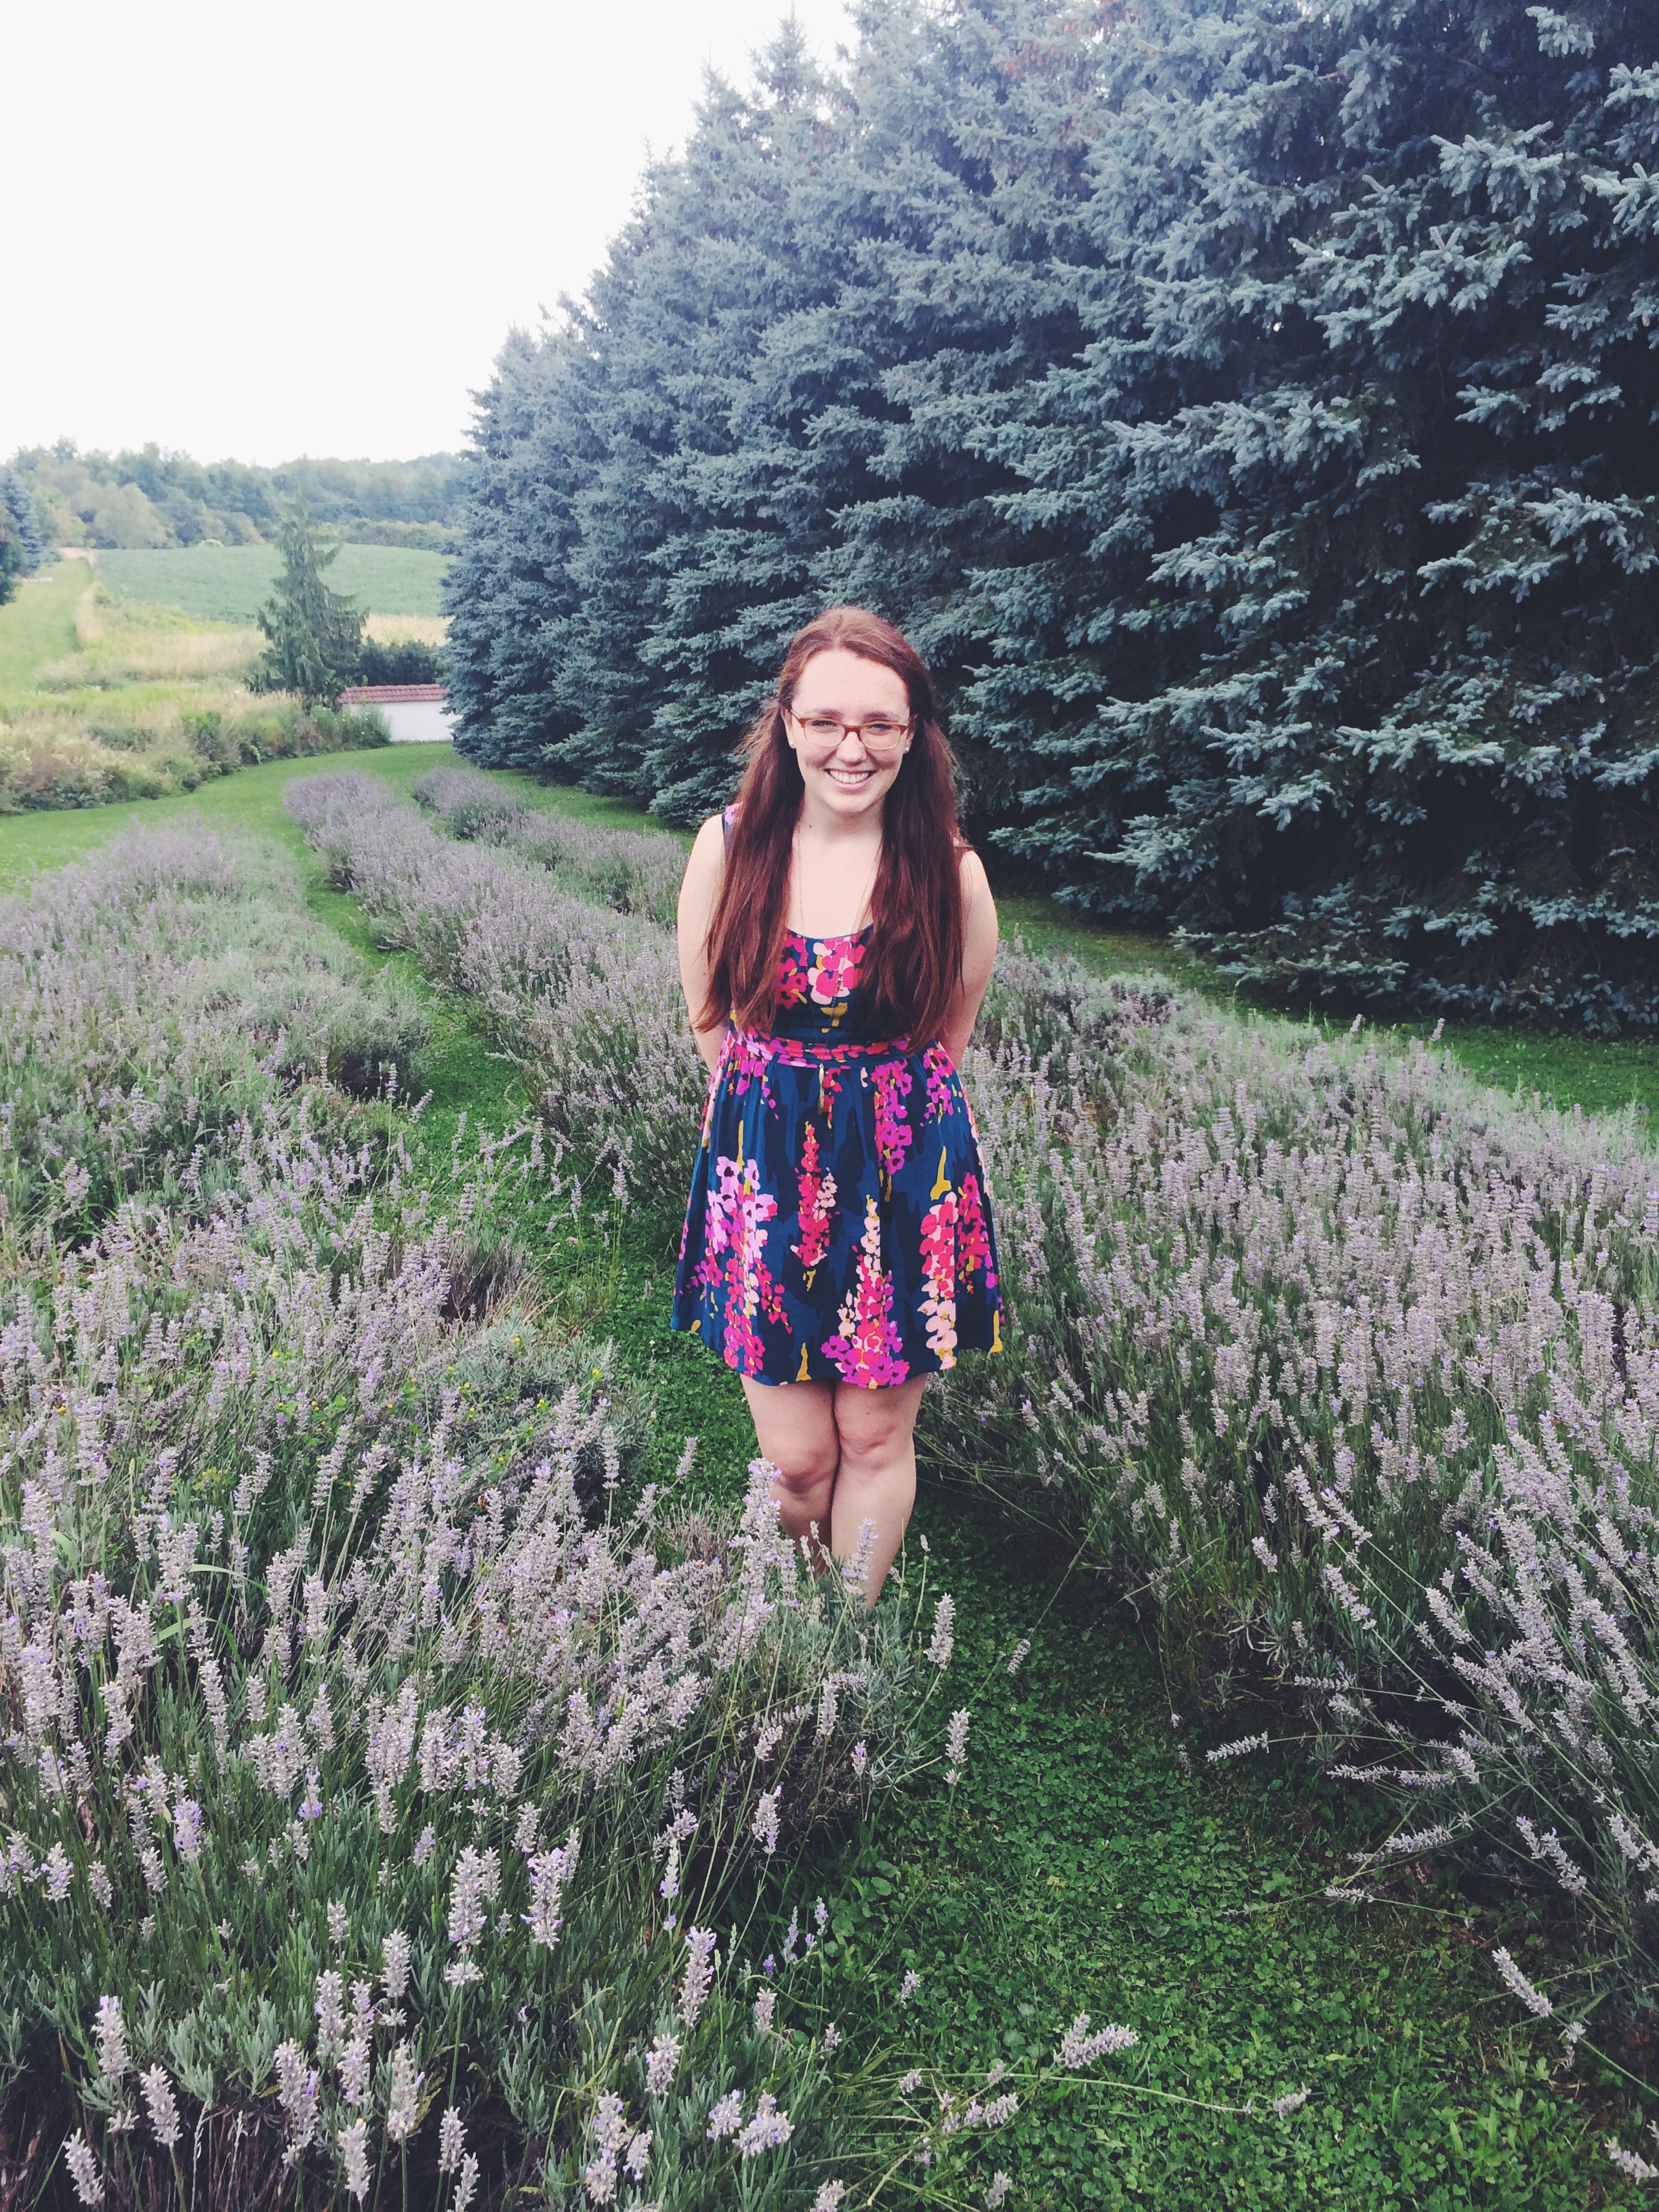 Frolicking in the lavender fields